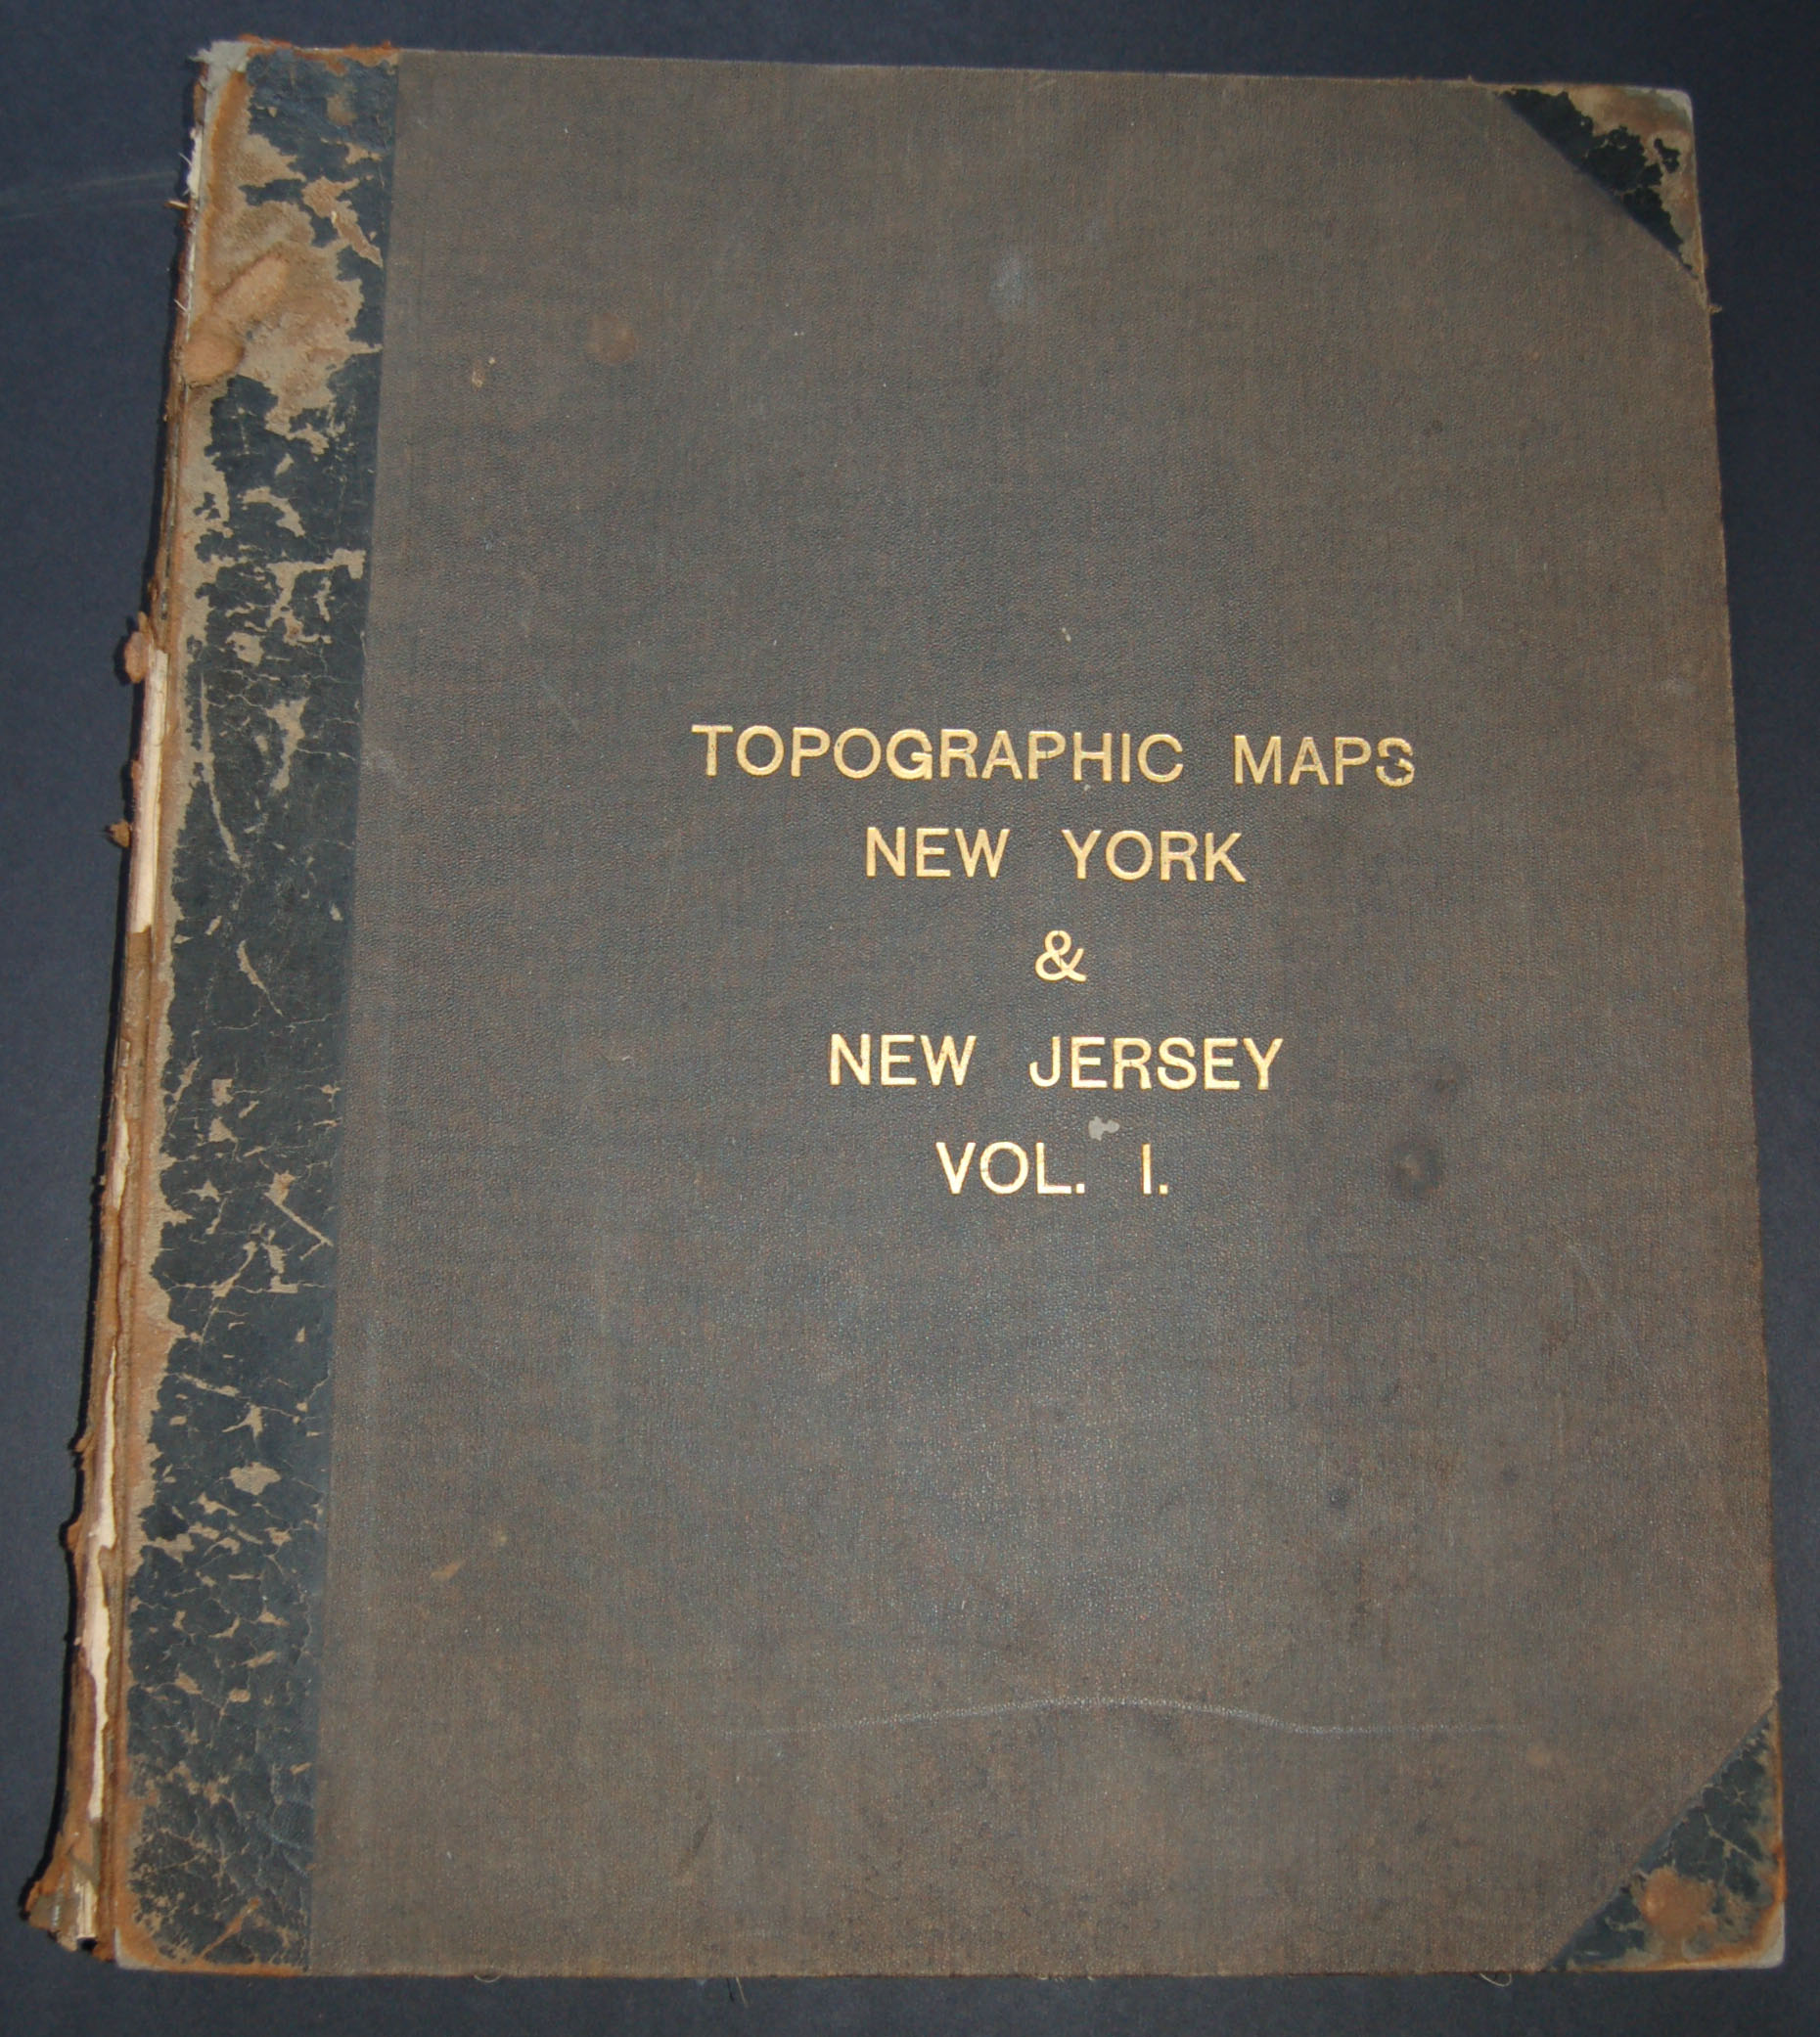 Topographic Maps New York & New Jersey Vol. 1 - Main View